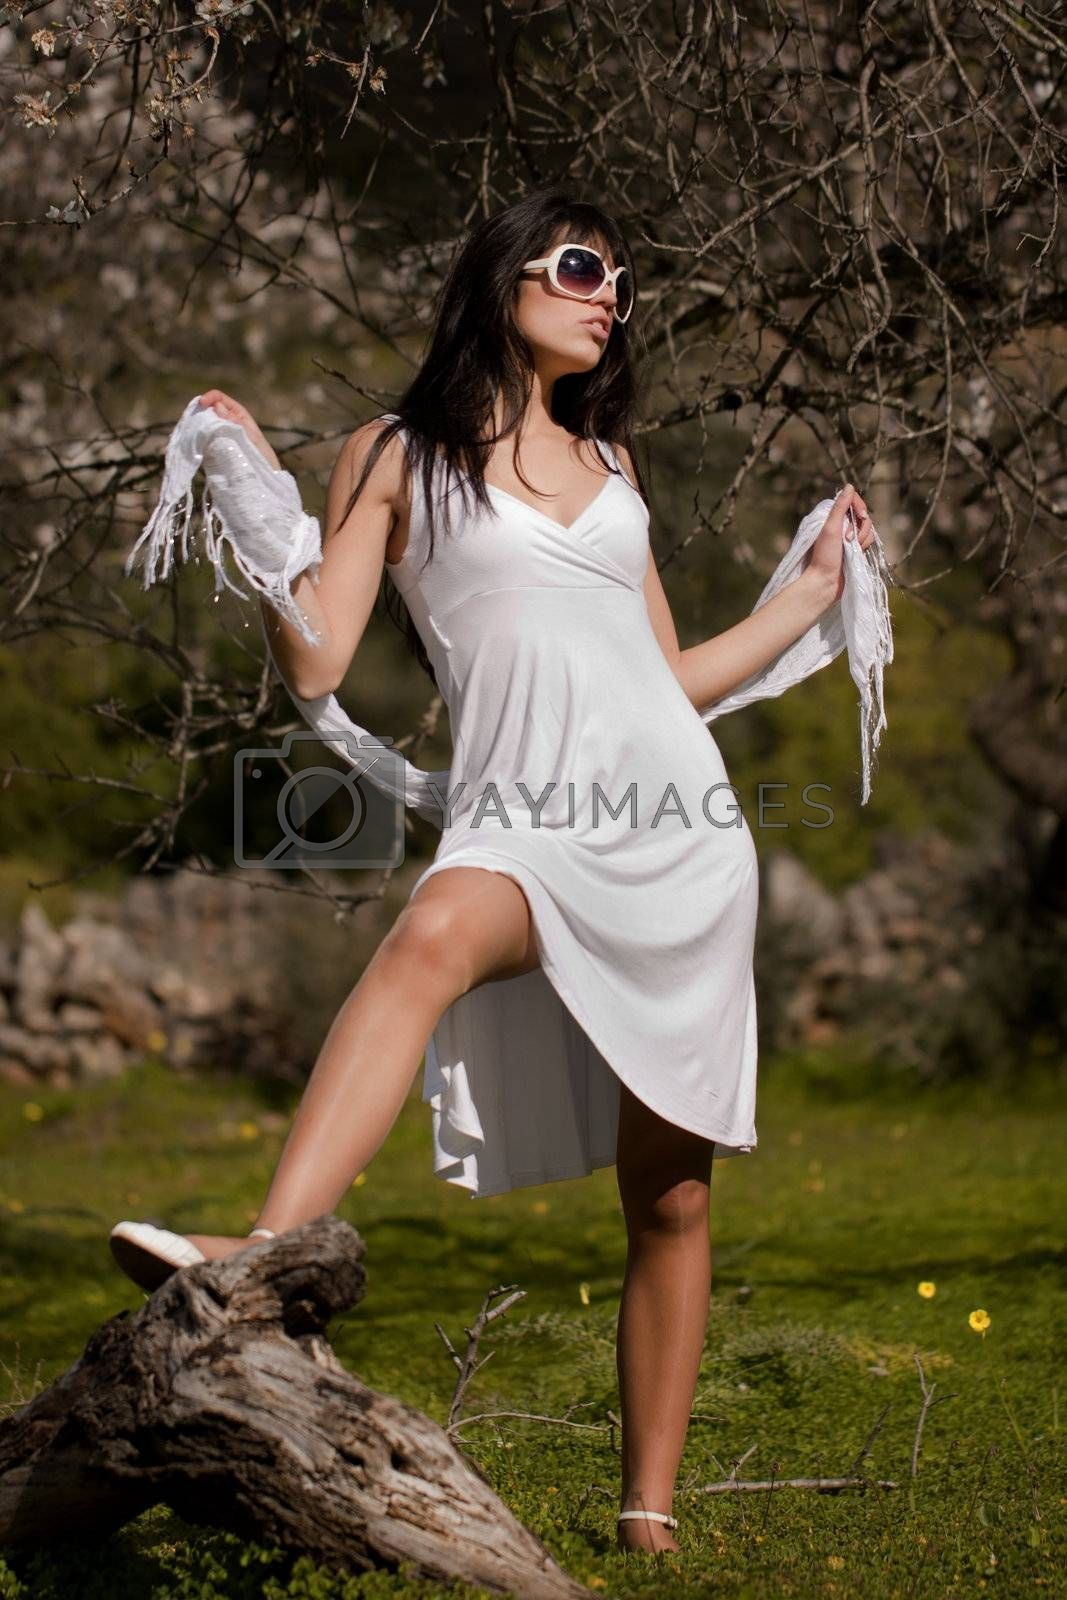 View of a beautiful girl on a white dress on a green grass field next to a almond tree